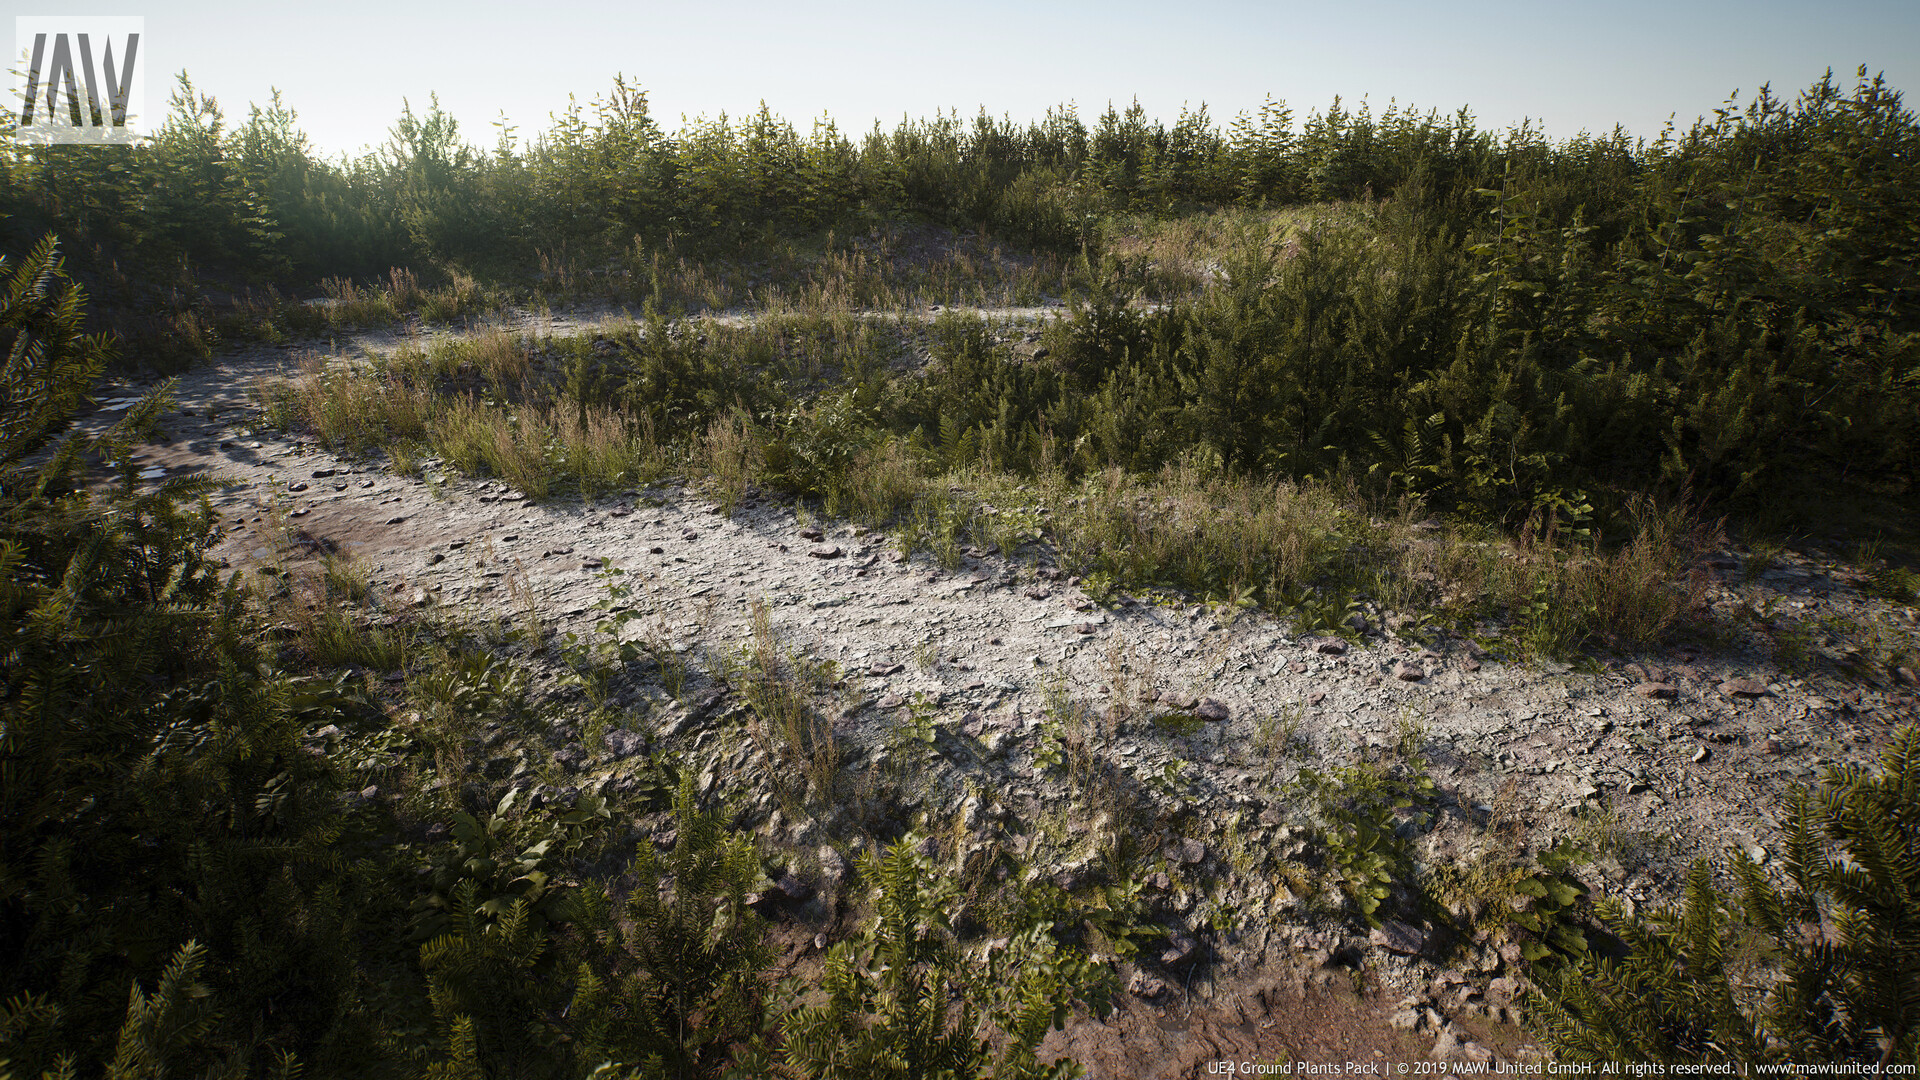 ArtStation - UE4 Ground Plants Pack Update, Willi Hammes